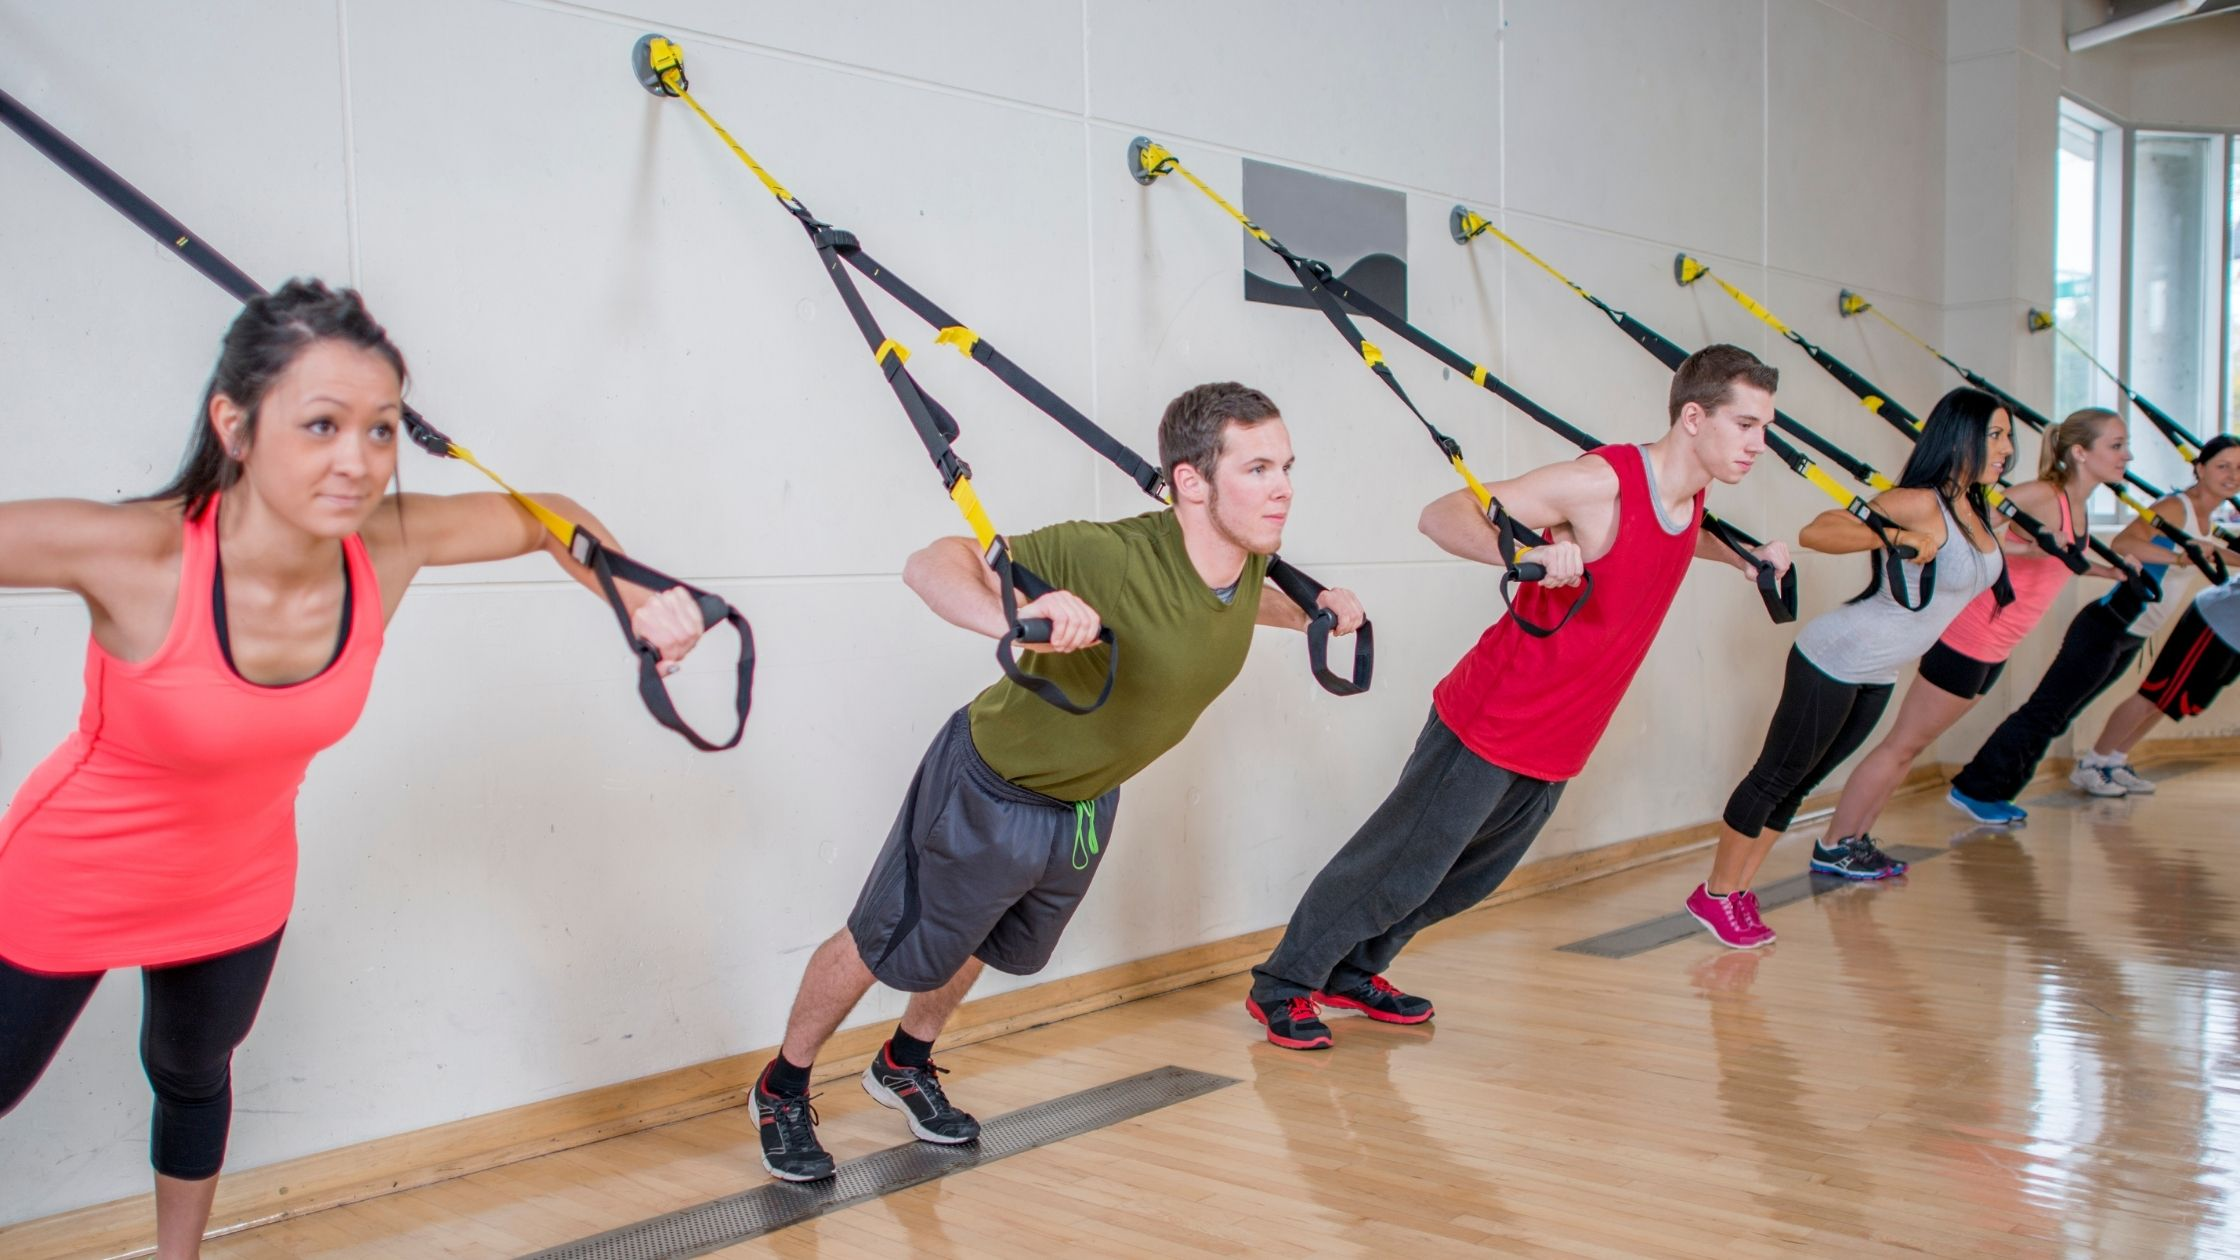 types of gyms: group fitness gym